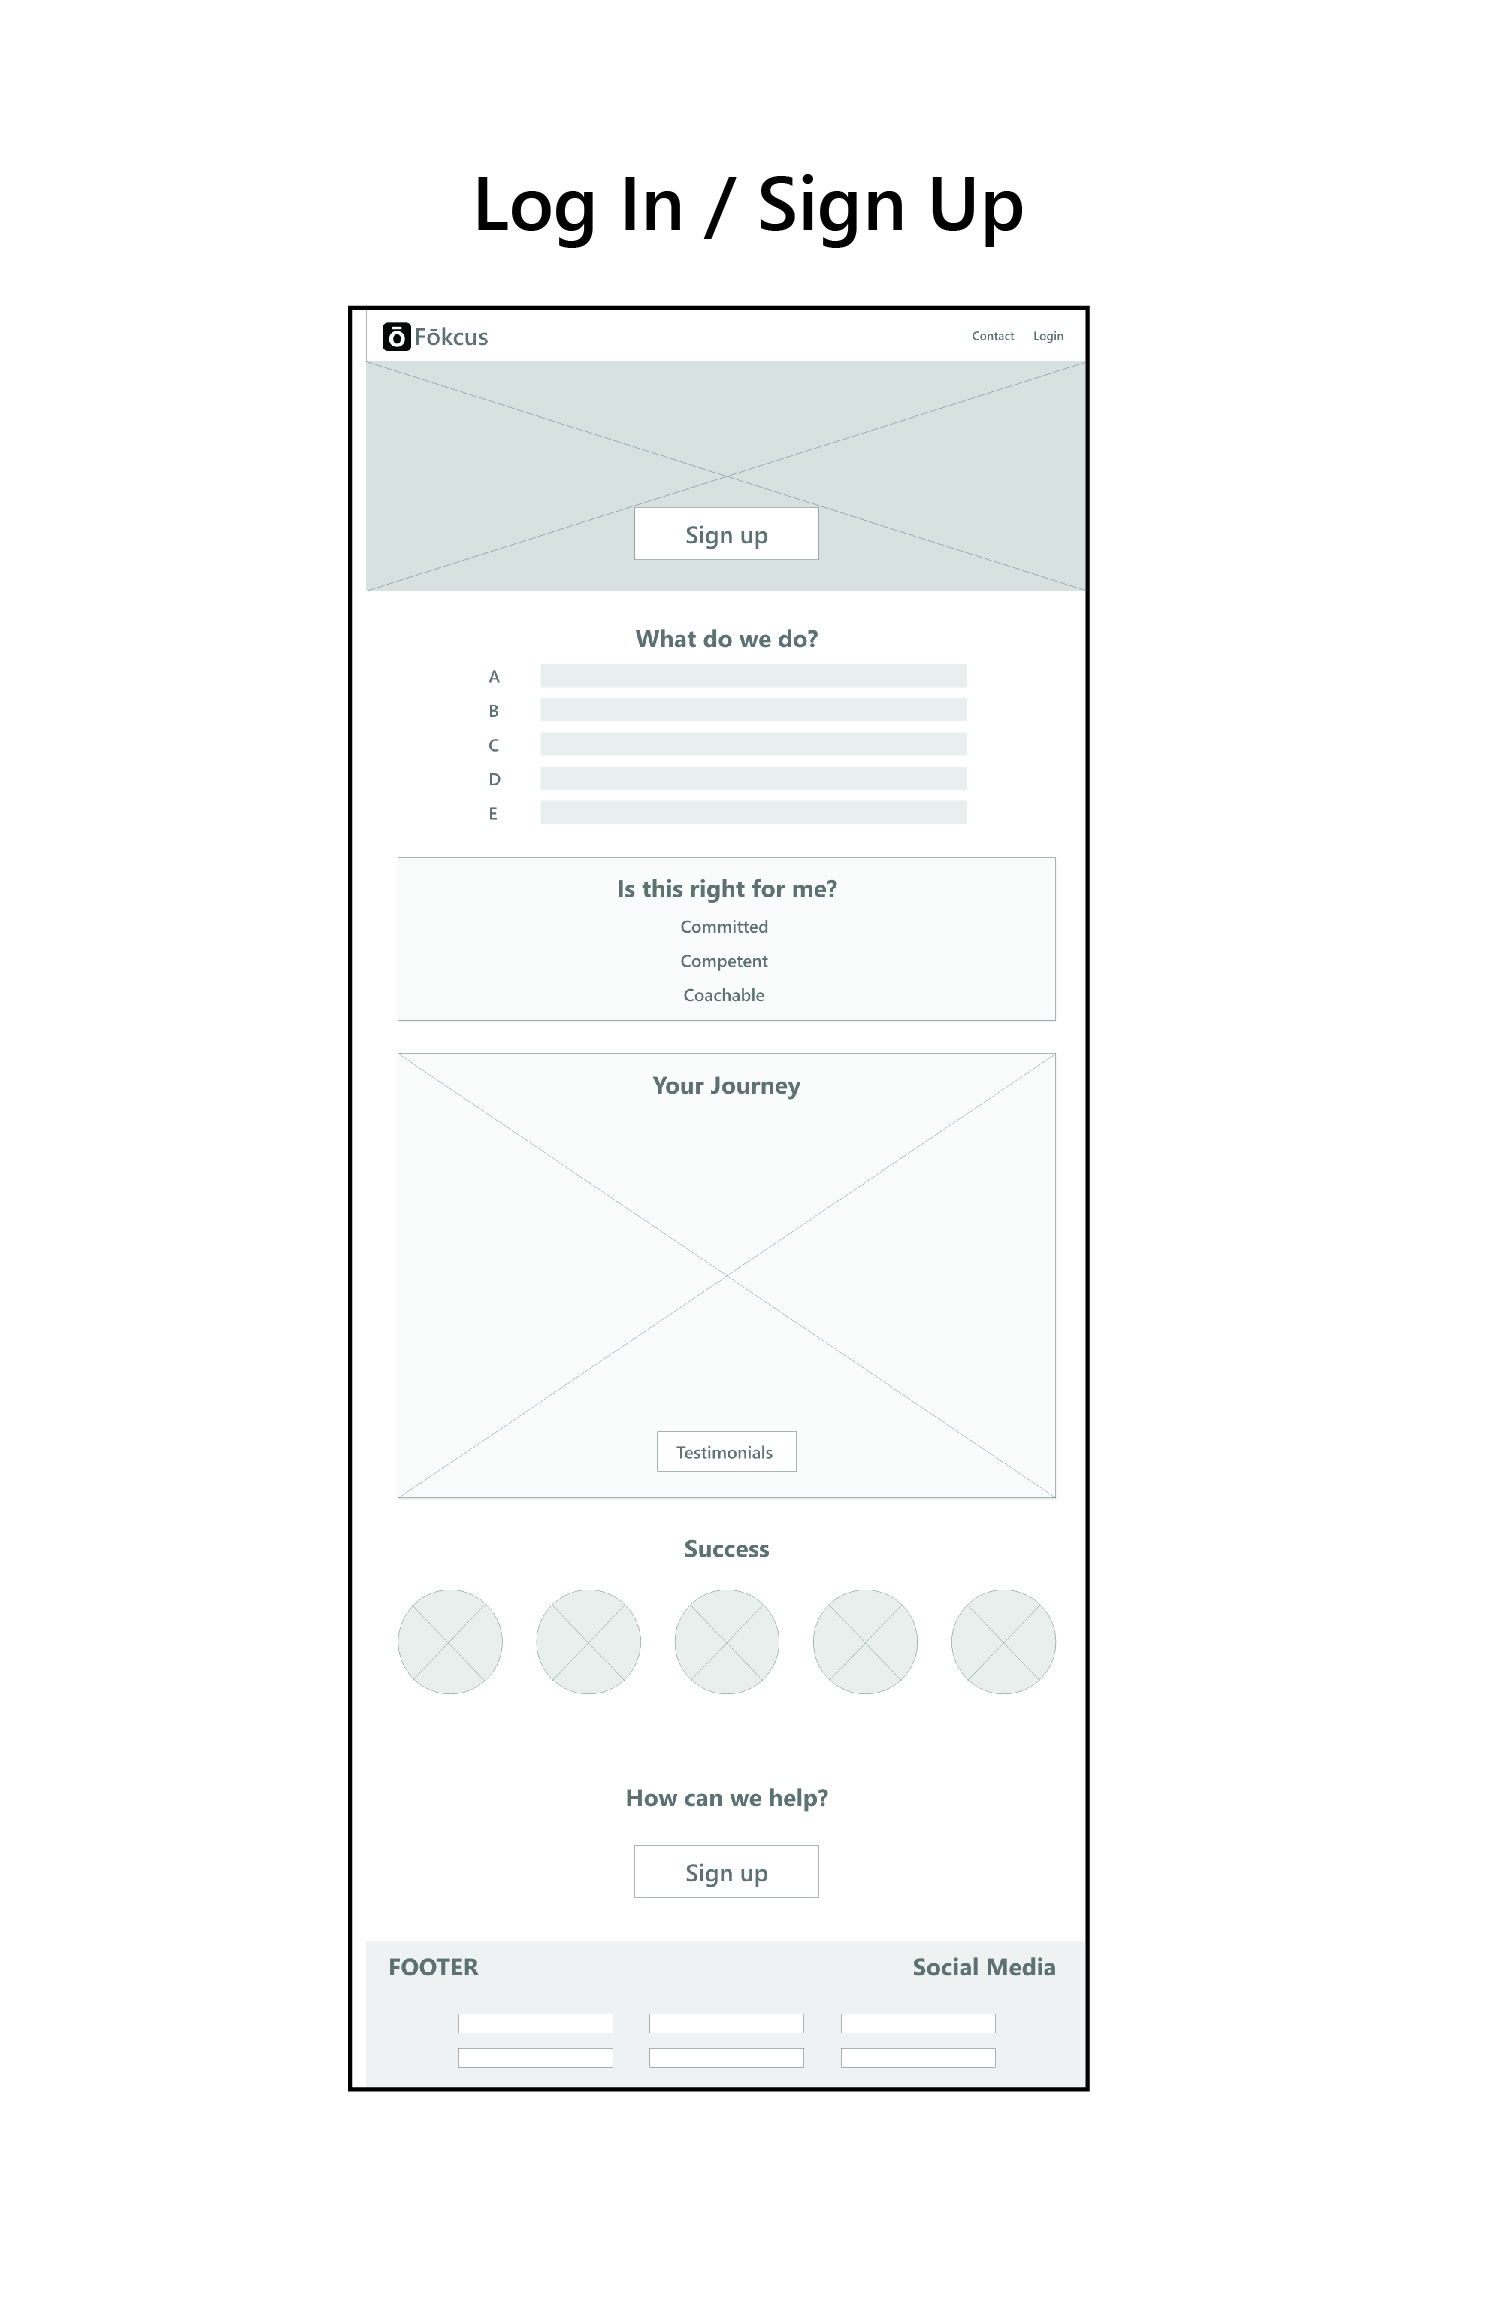 Low Fi Wireframes - We kept much of the original wireframe content and added or enhanced most features.